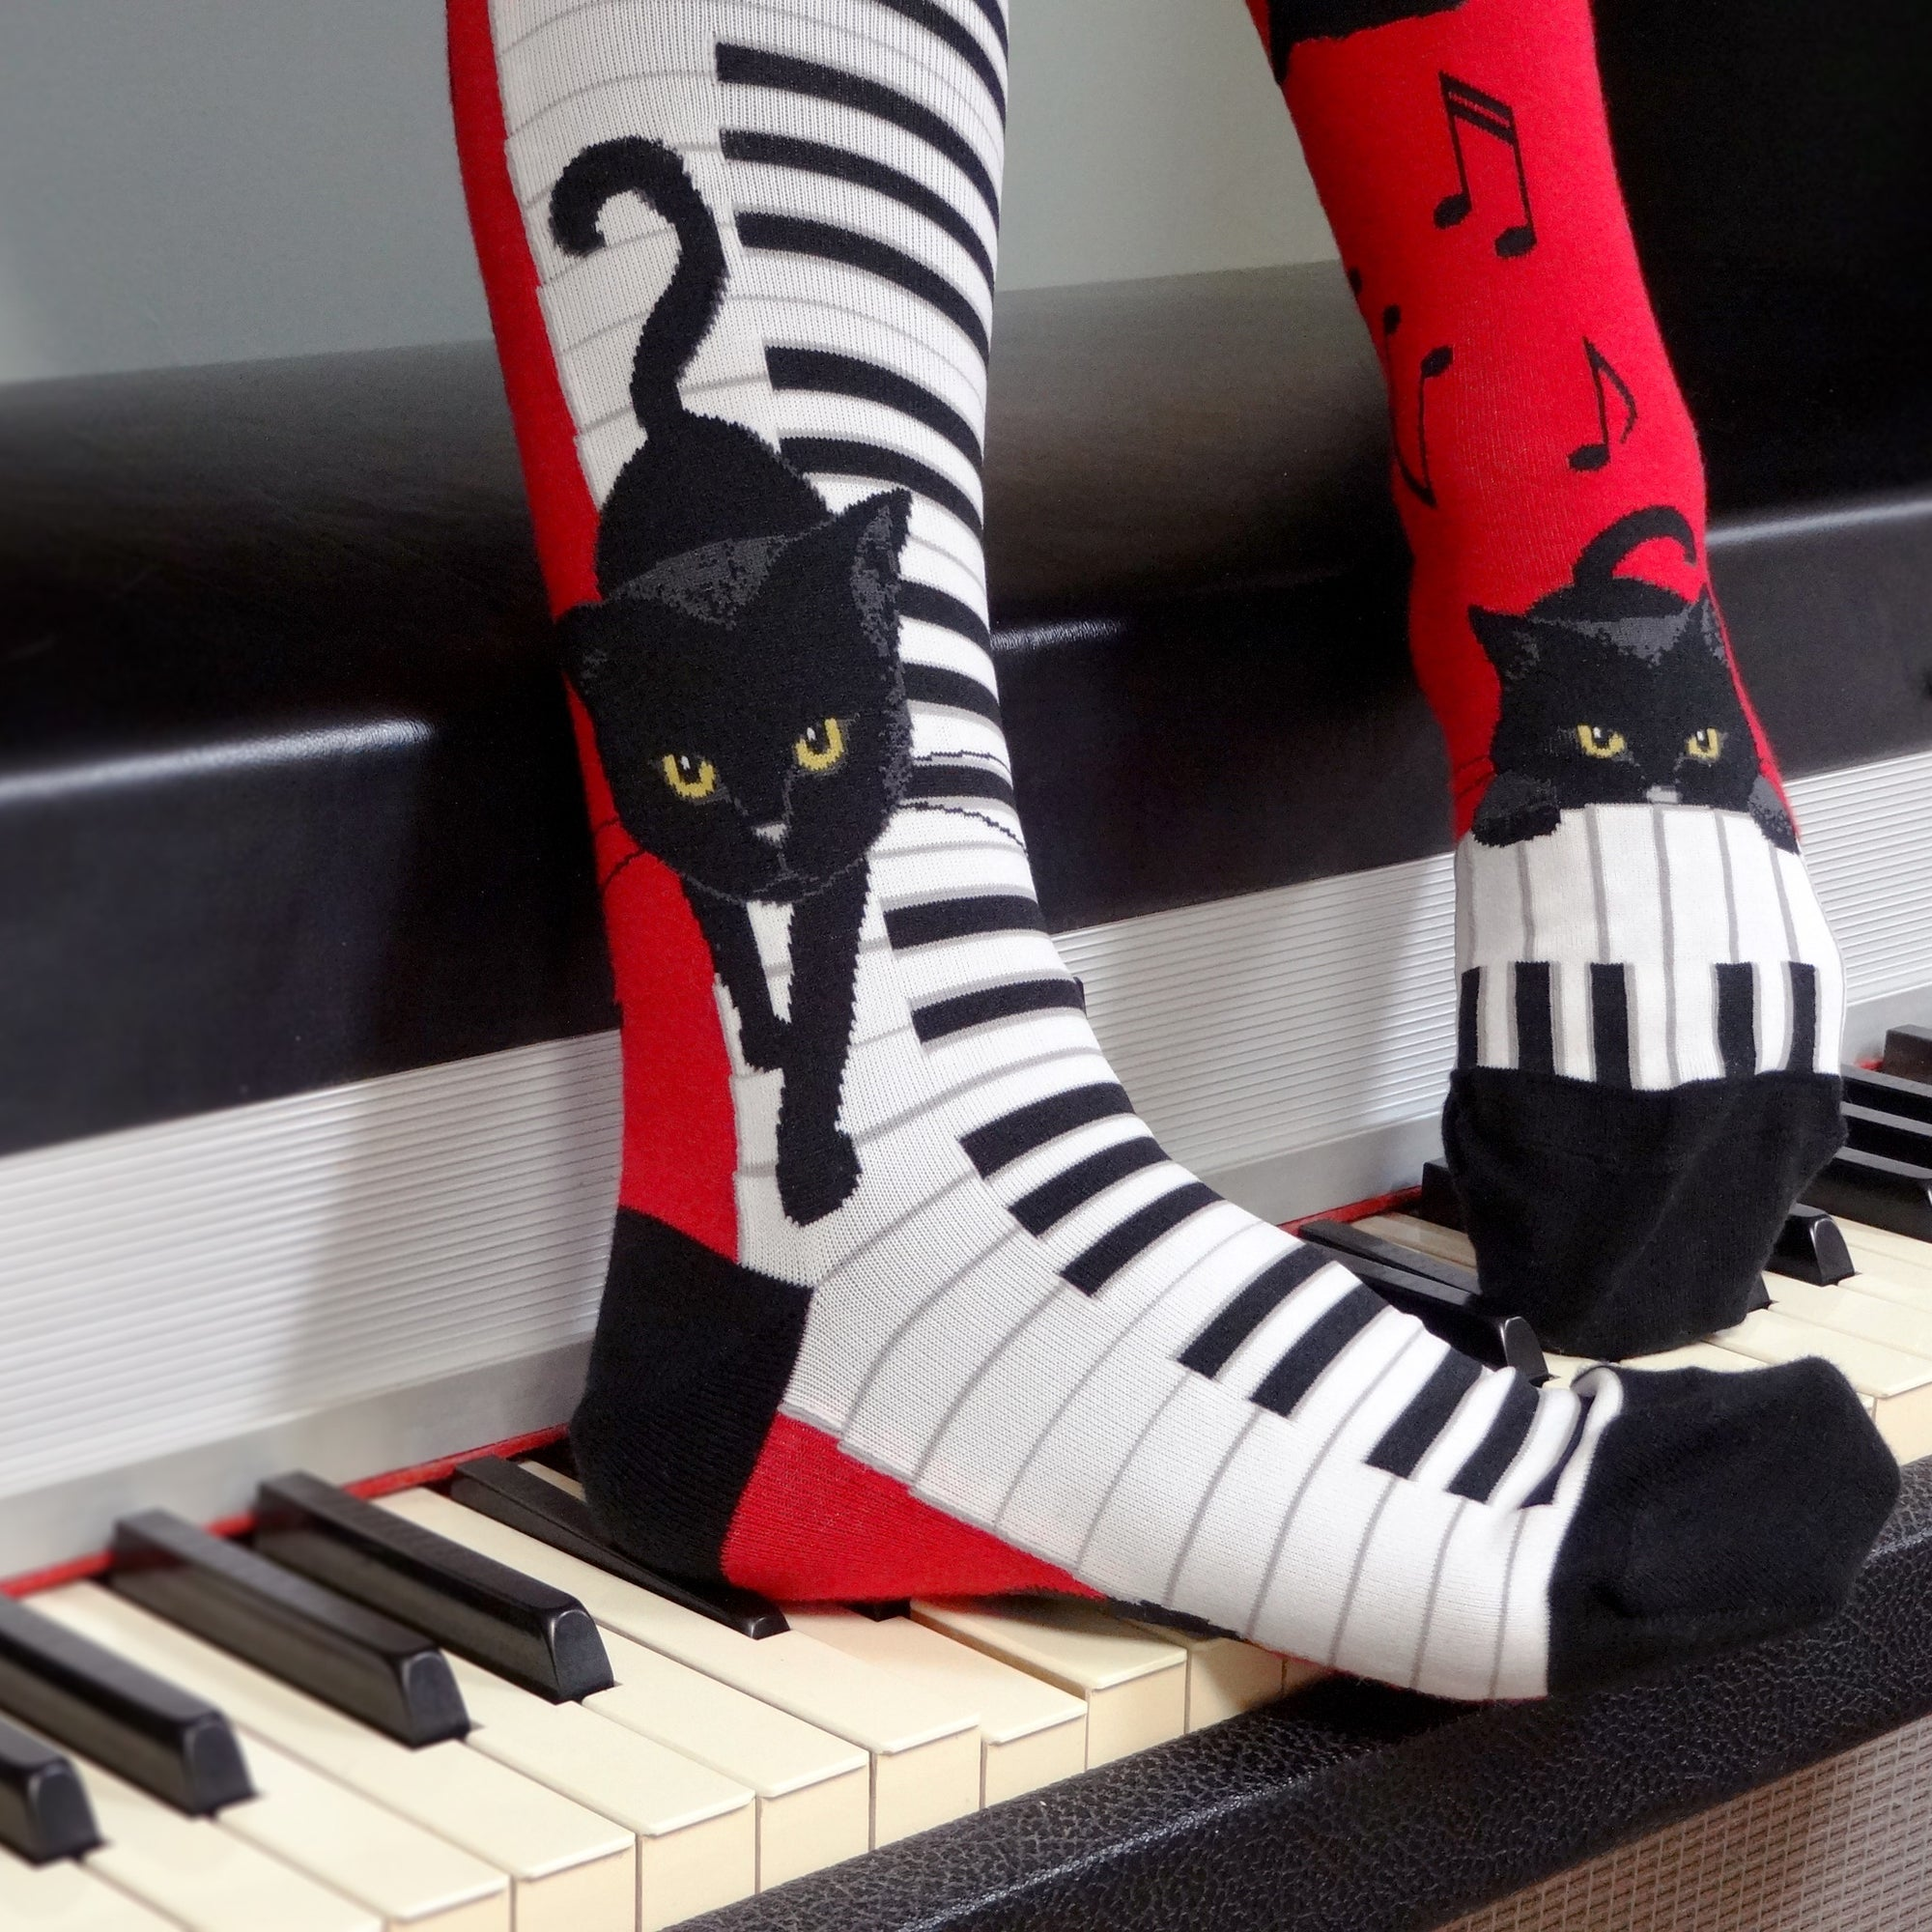 On these red knee highs with a black heel and toe are cute black cats with orange eyes prancing and playing on white and black piano keys with black music notes floating around them. In our Cat Socks collection you can find tons of cute cat socks!